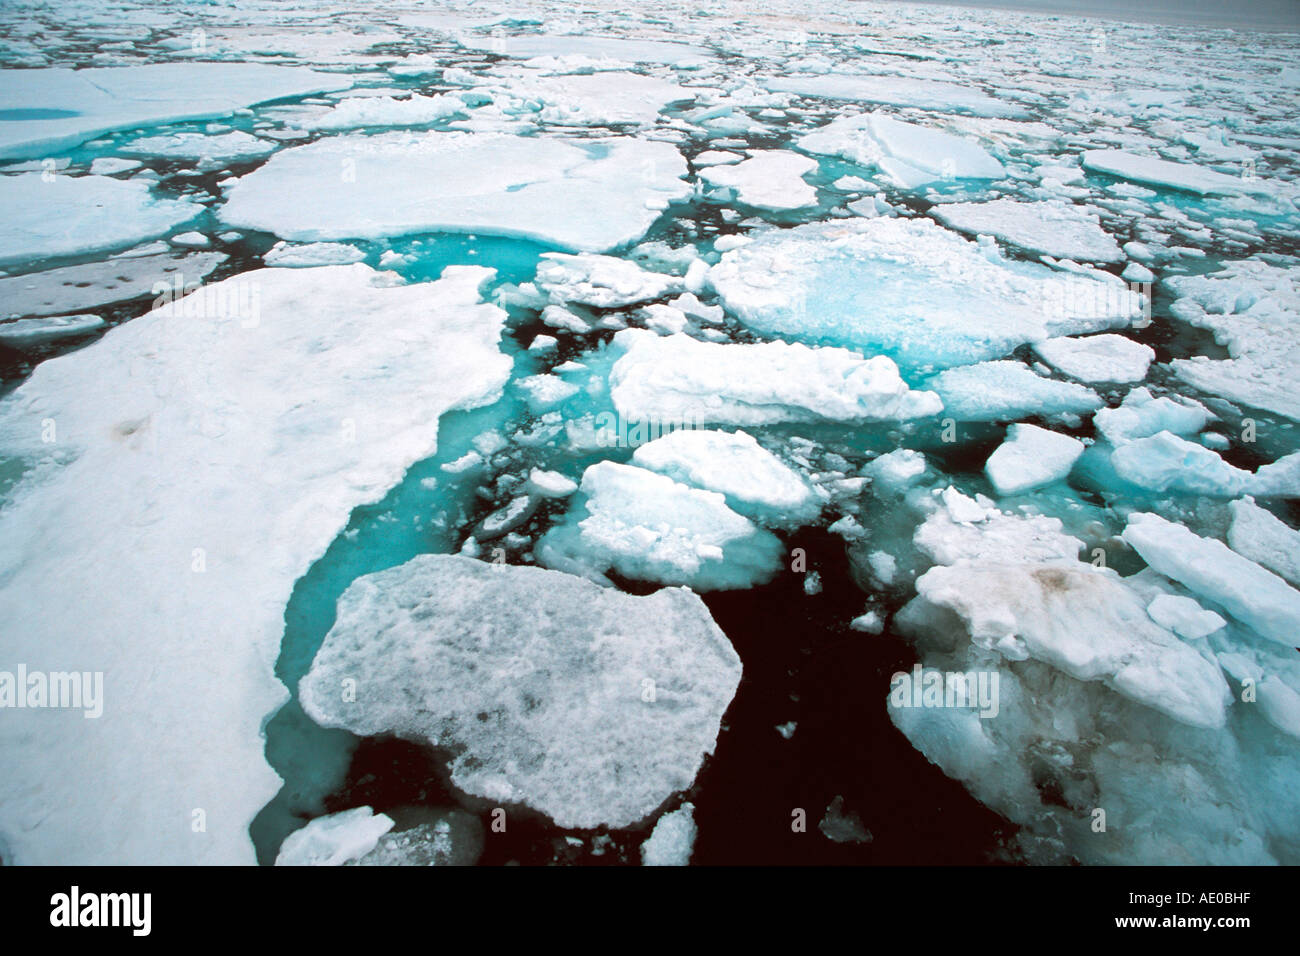 drift ice pack ice ice field actic ocean Treibeis Packeis Eisfeld Arktis Ozean Svalbard Spitzbergen Norway Stock Photo